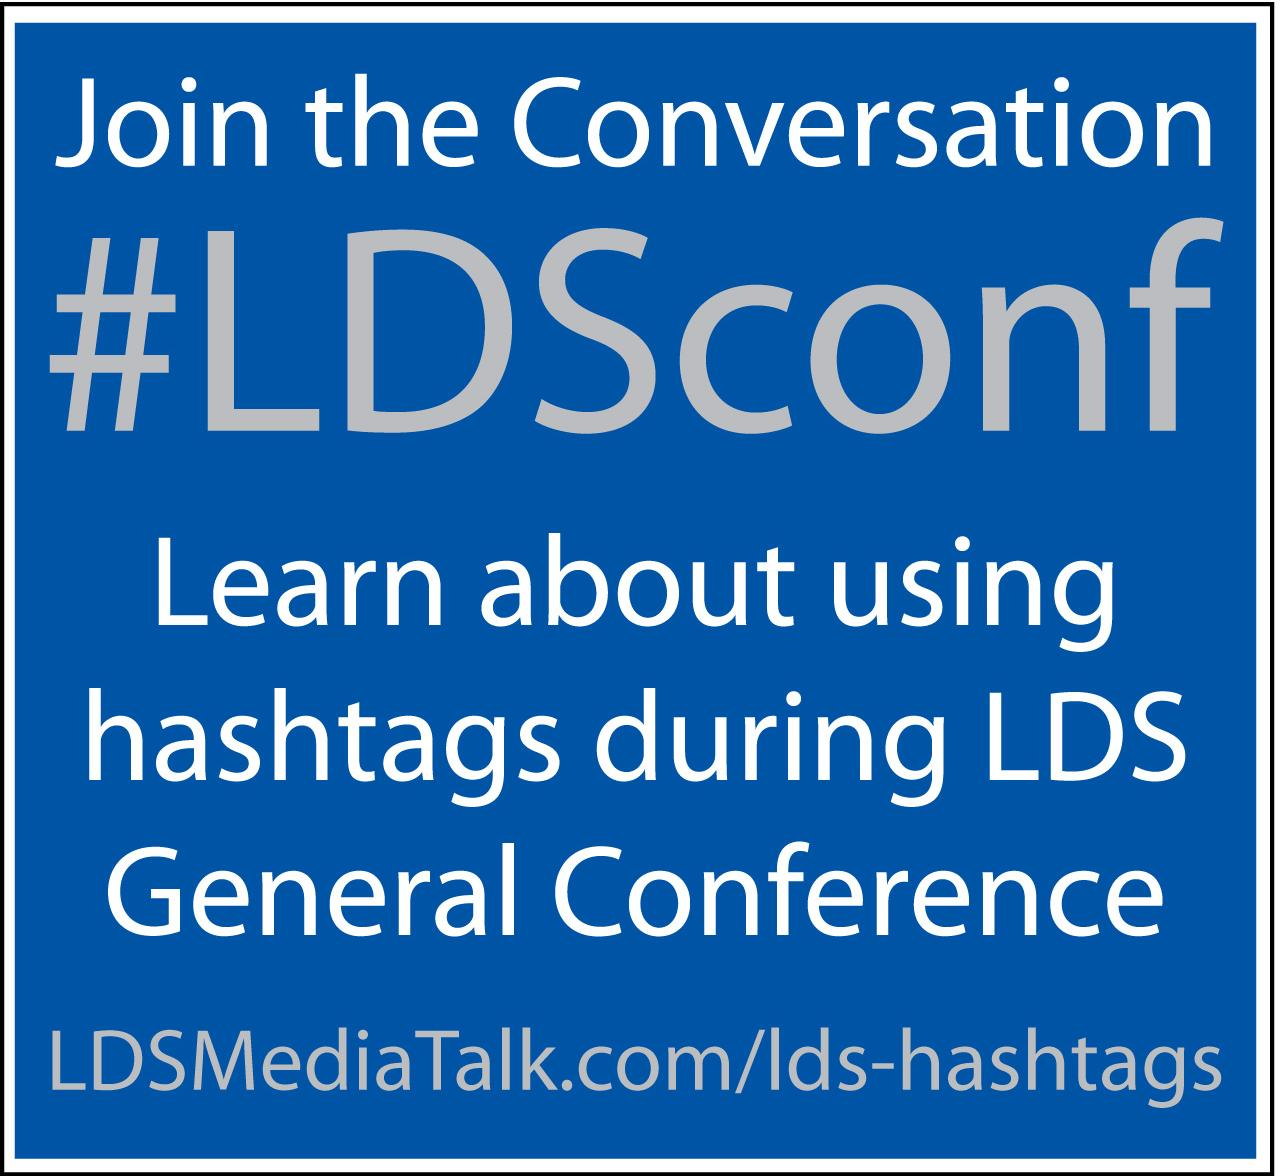 Hashtags for LDS General Conference